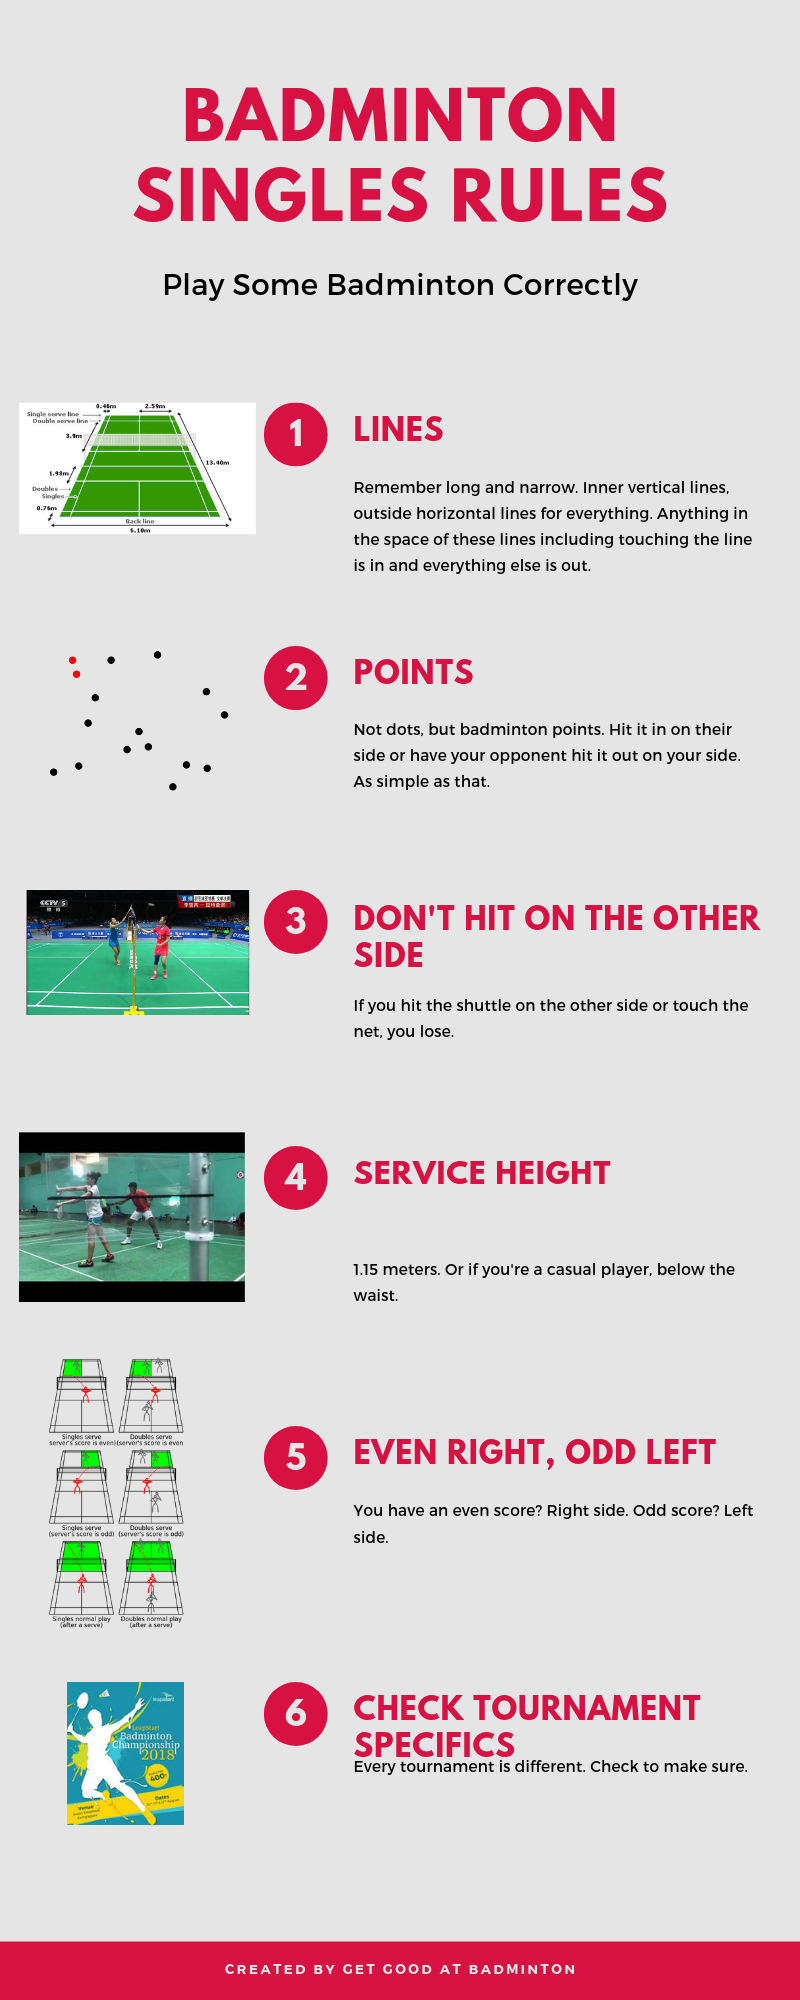 Badminton Rules And Regulations For Singles Badminton Rules Badminton Rules